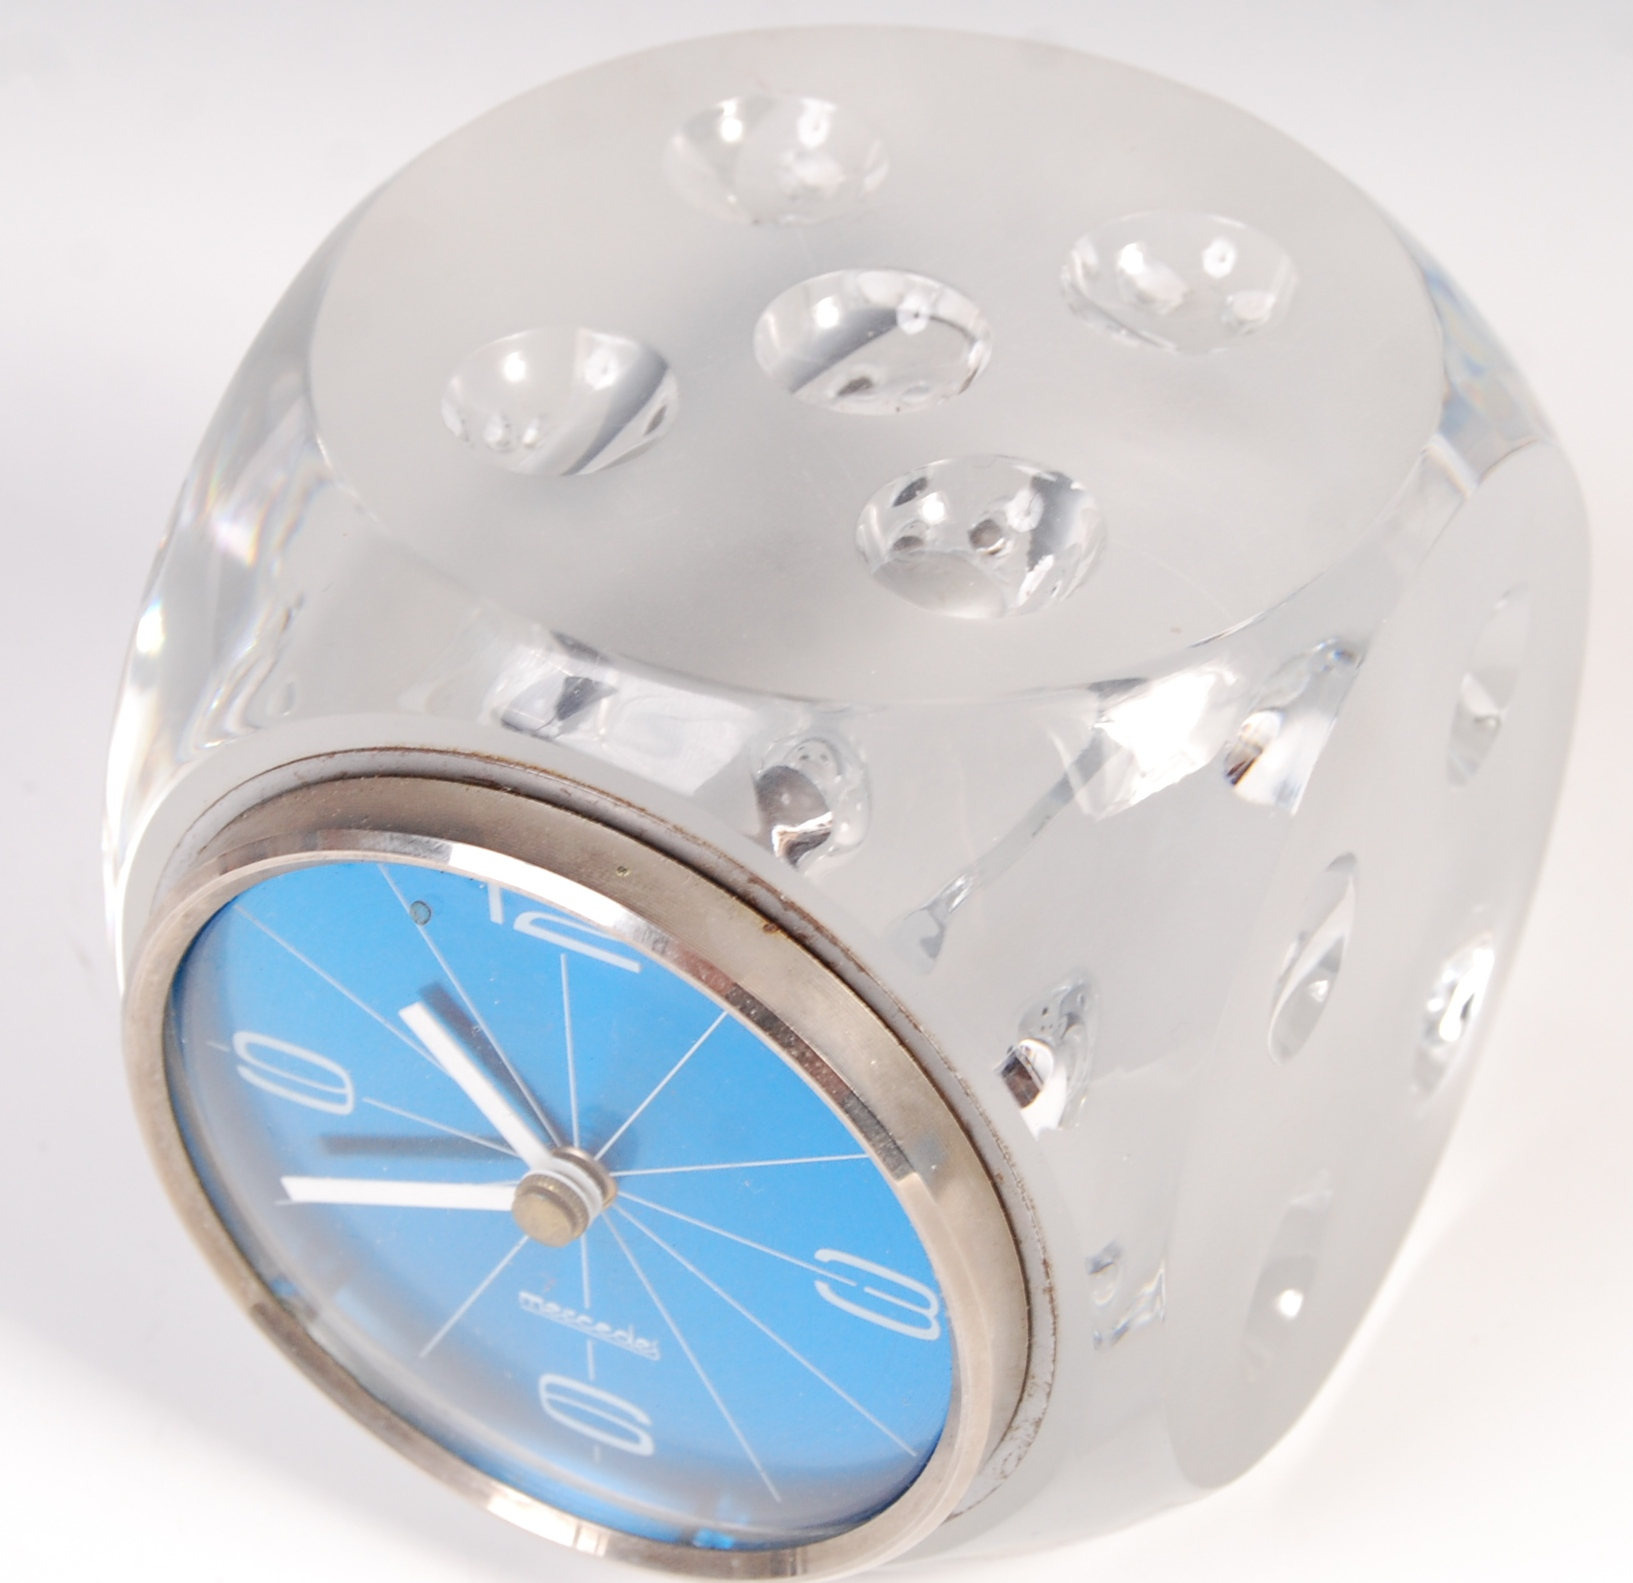 Lot 45 - MERCEDES VINTAGE TABLE / DESK CLOCK IN THE FORM OF A DICE